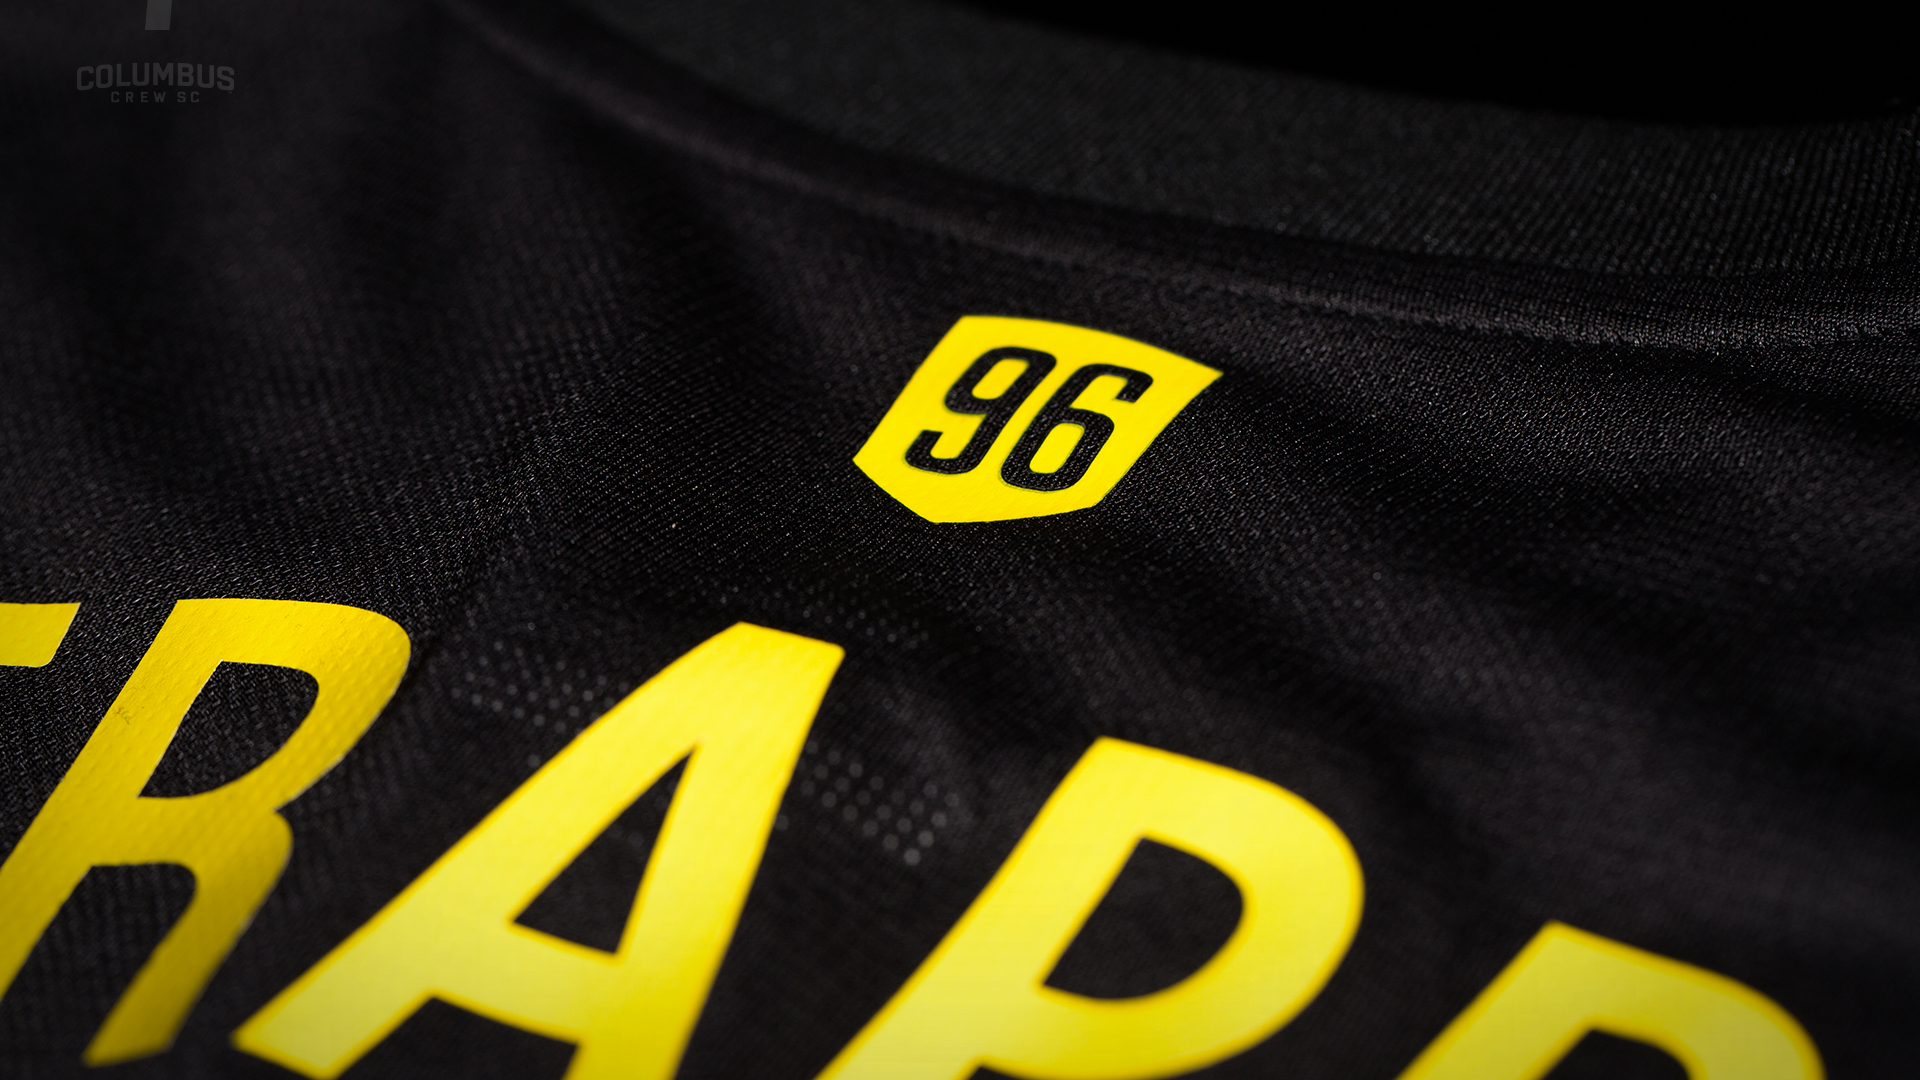 Columbus Crew SC reveal black secondary jersey ahead of 2018 season